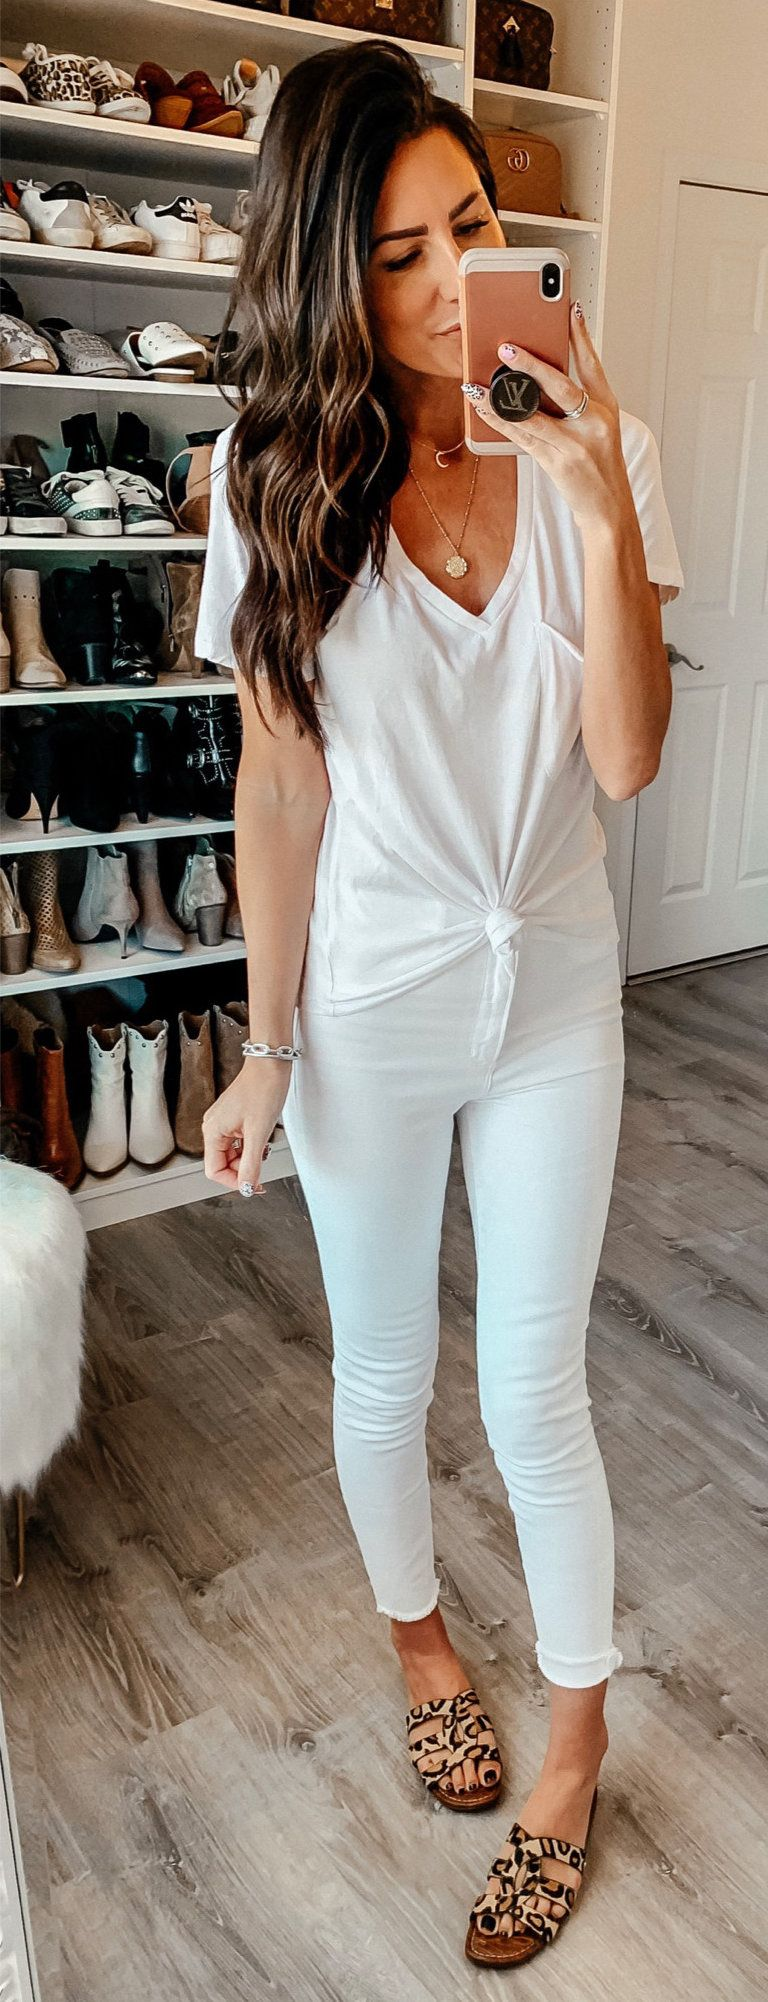 white v-neck shirt #spring #outfits